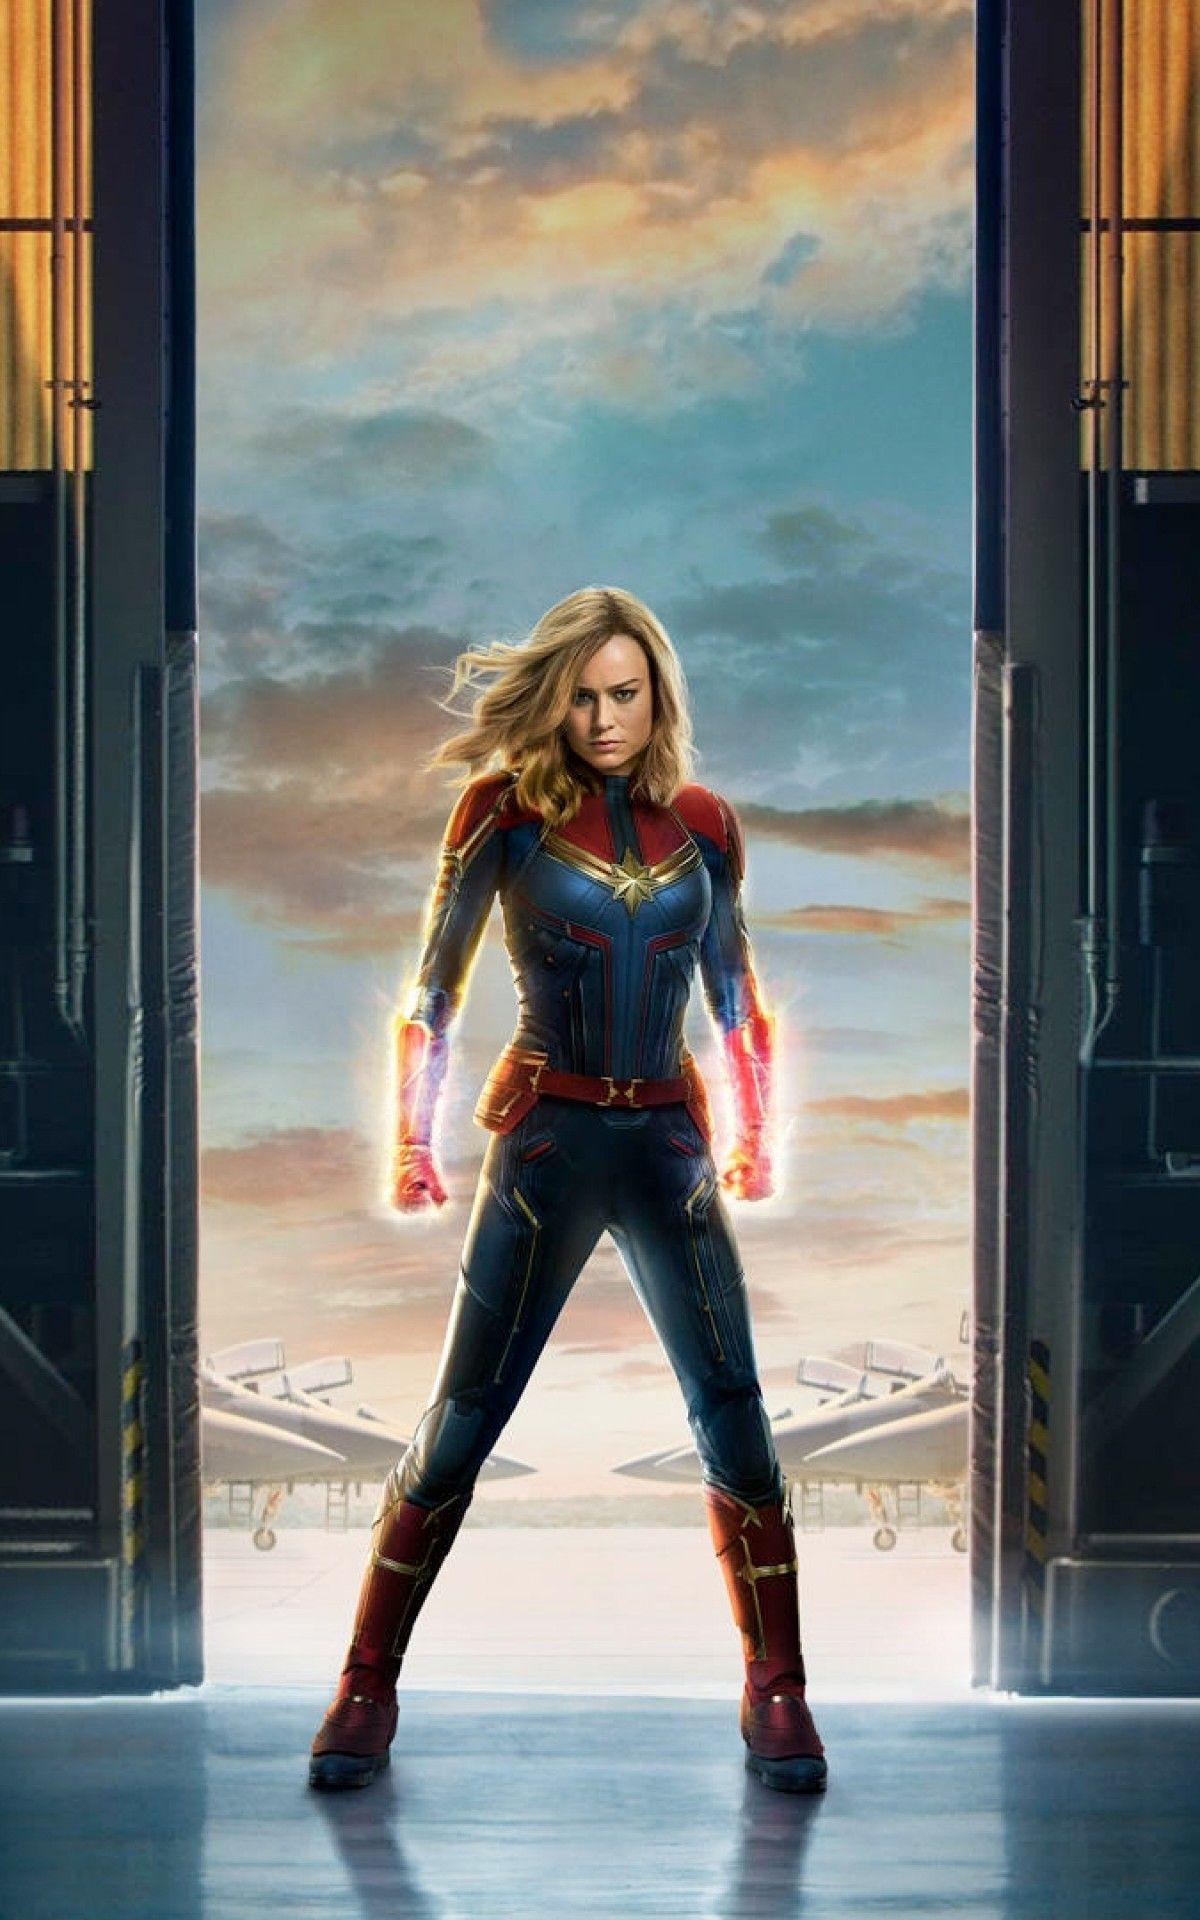 Download 1200x1920 Captain Marvel, Brie Larson Wallpapers for Asus